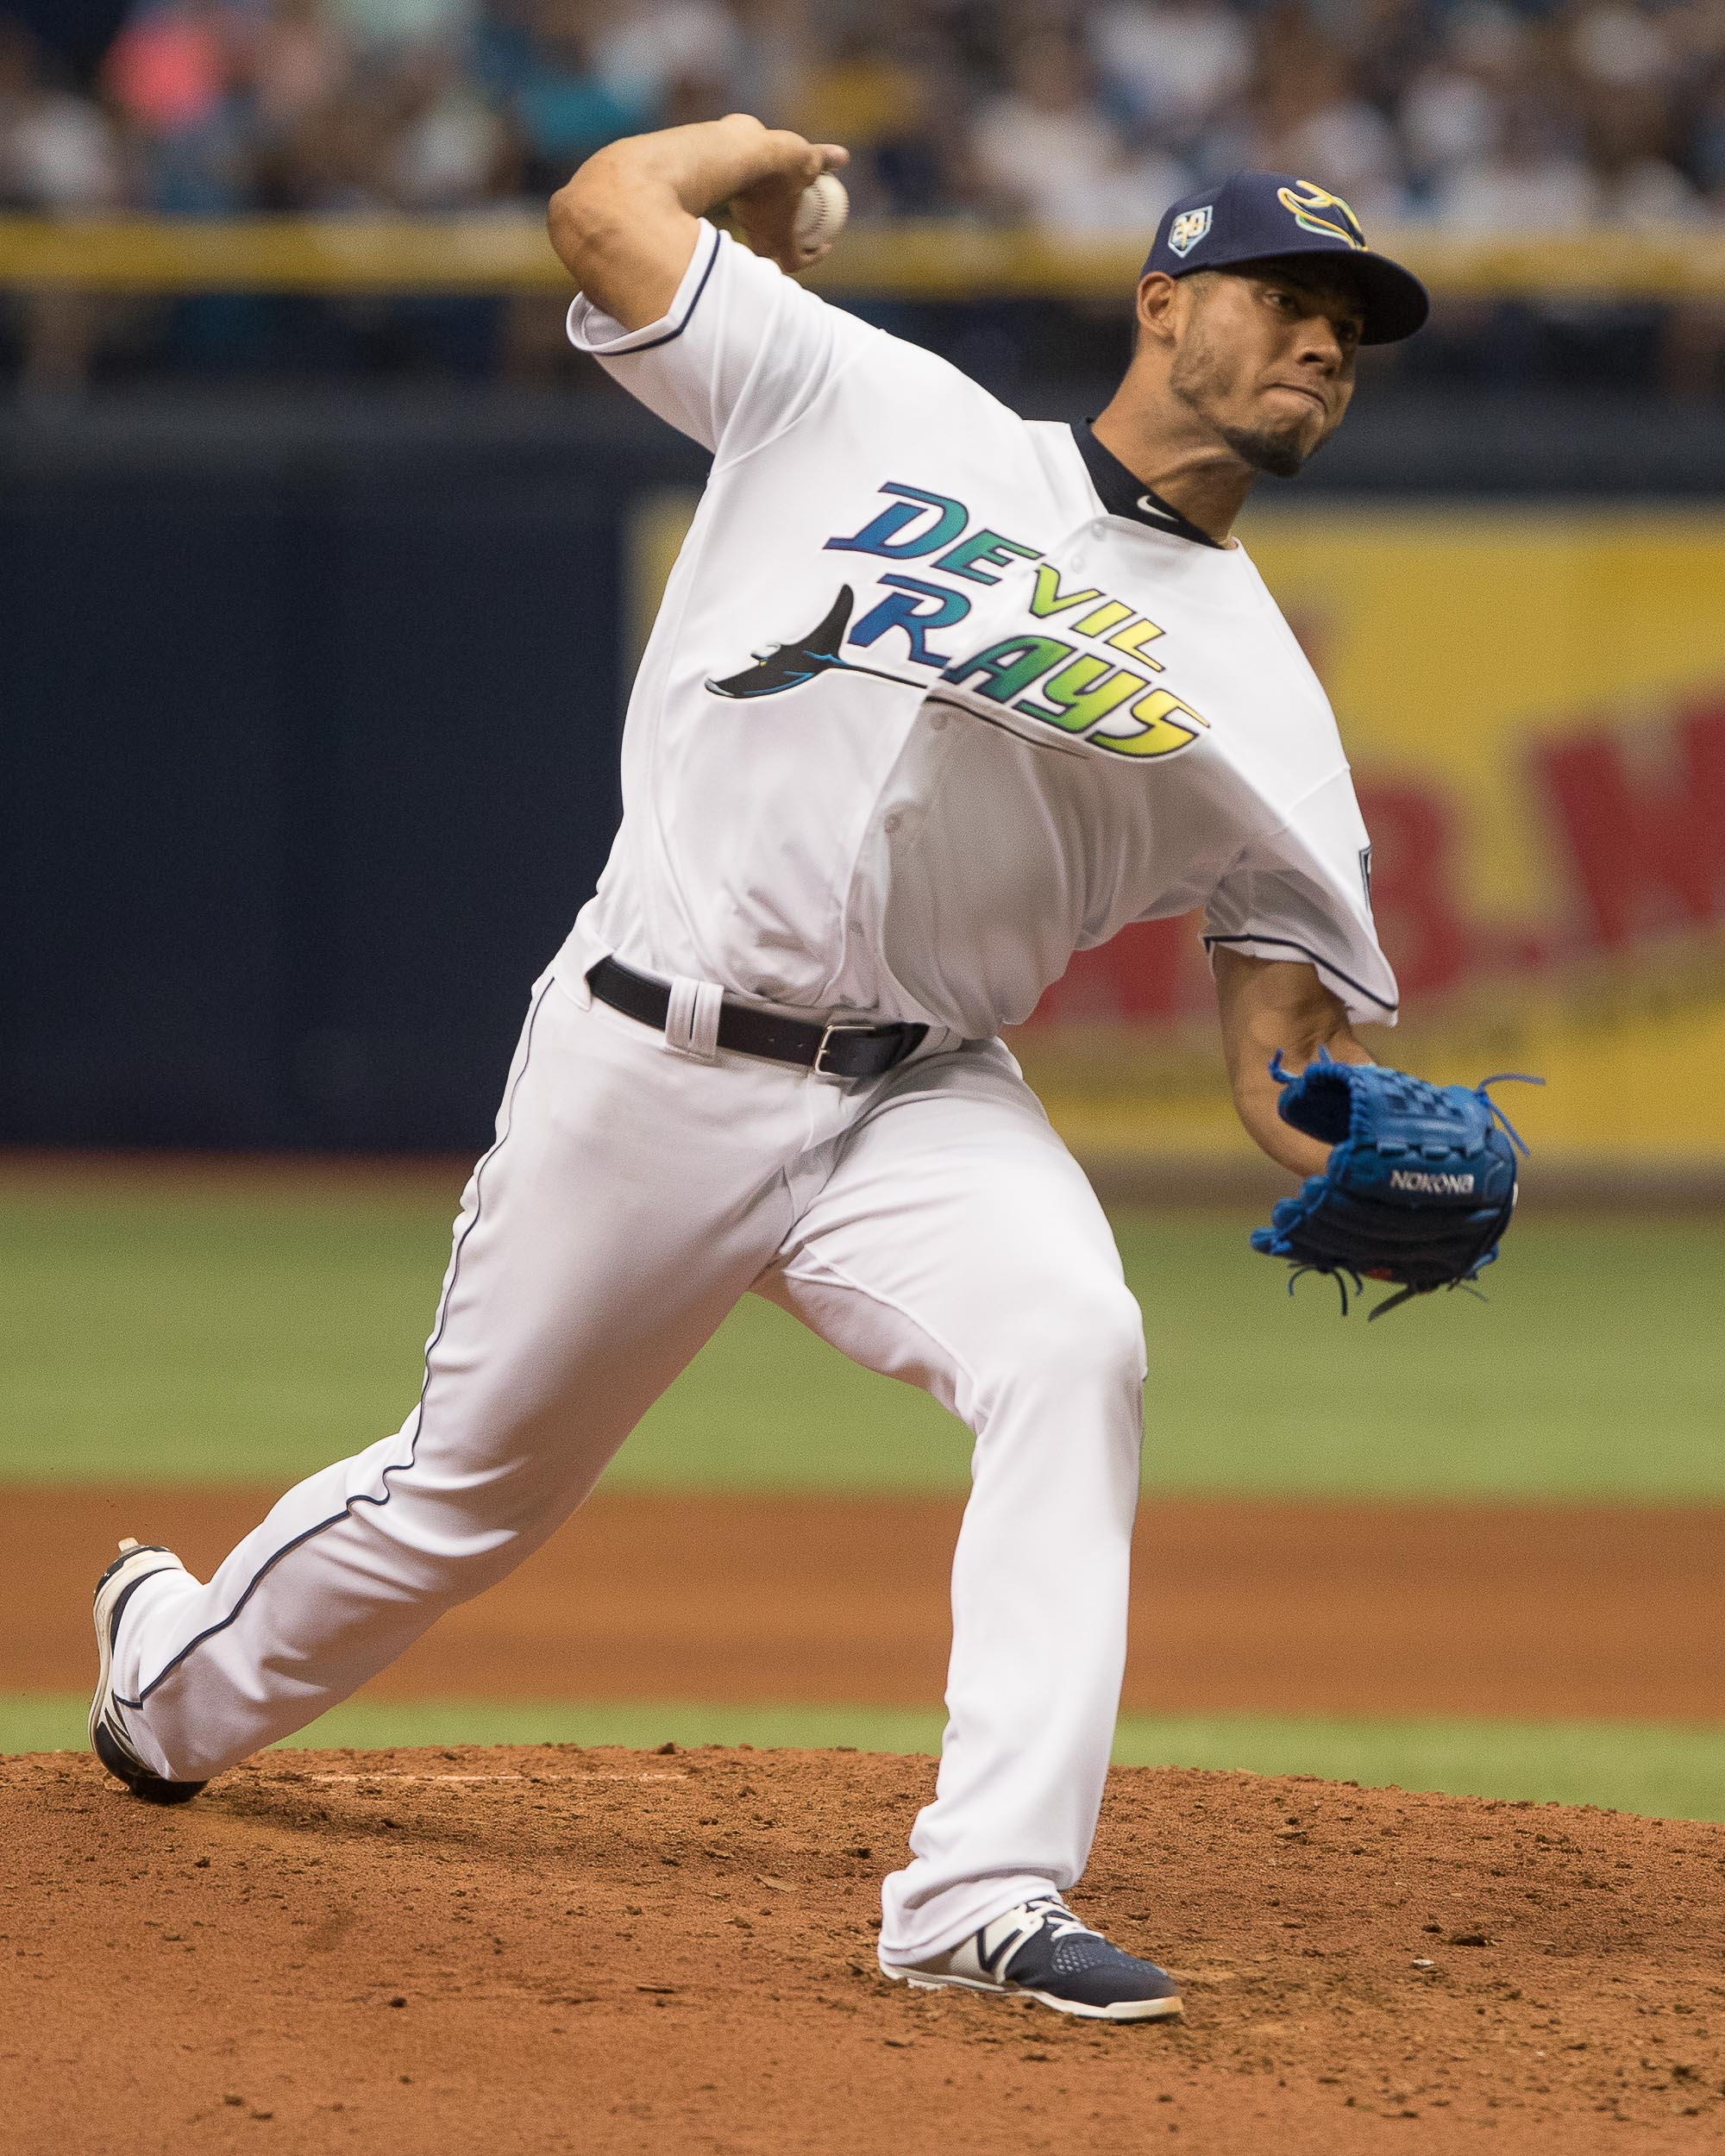 Font continued to pitch well for the Rays./STEVIE MUNCIE